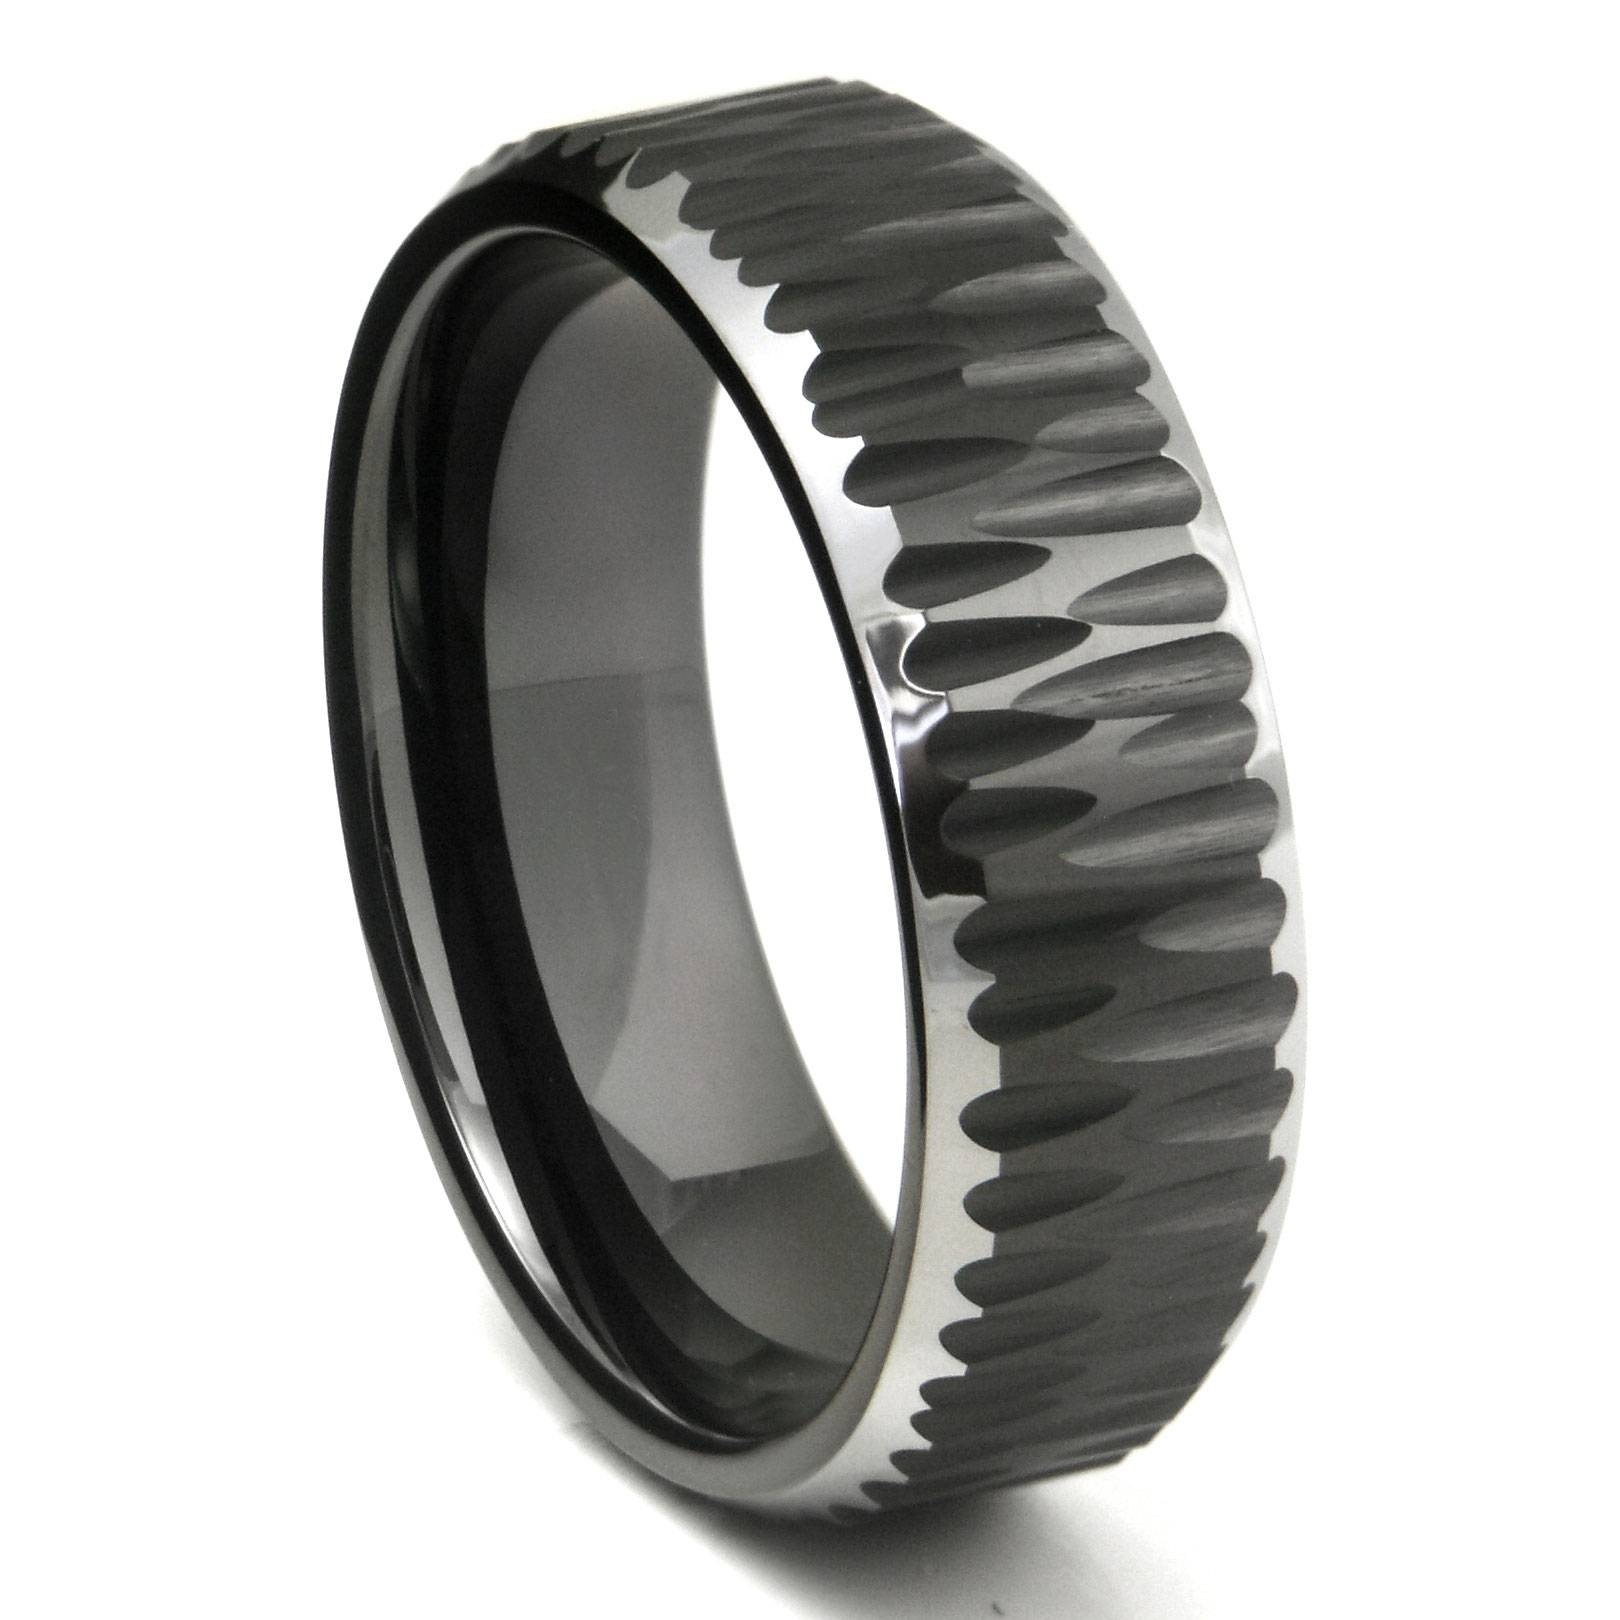 wedding black bands plated edge beveled fiber dp tungsten men rose mnh gold band for mens amazon rings carbon com inlay